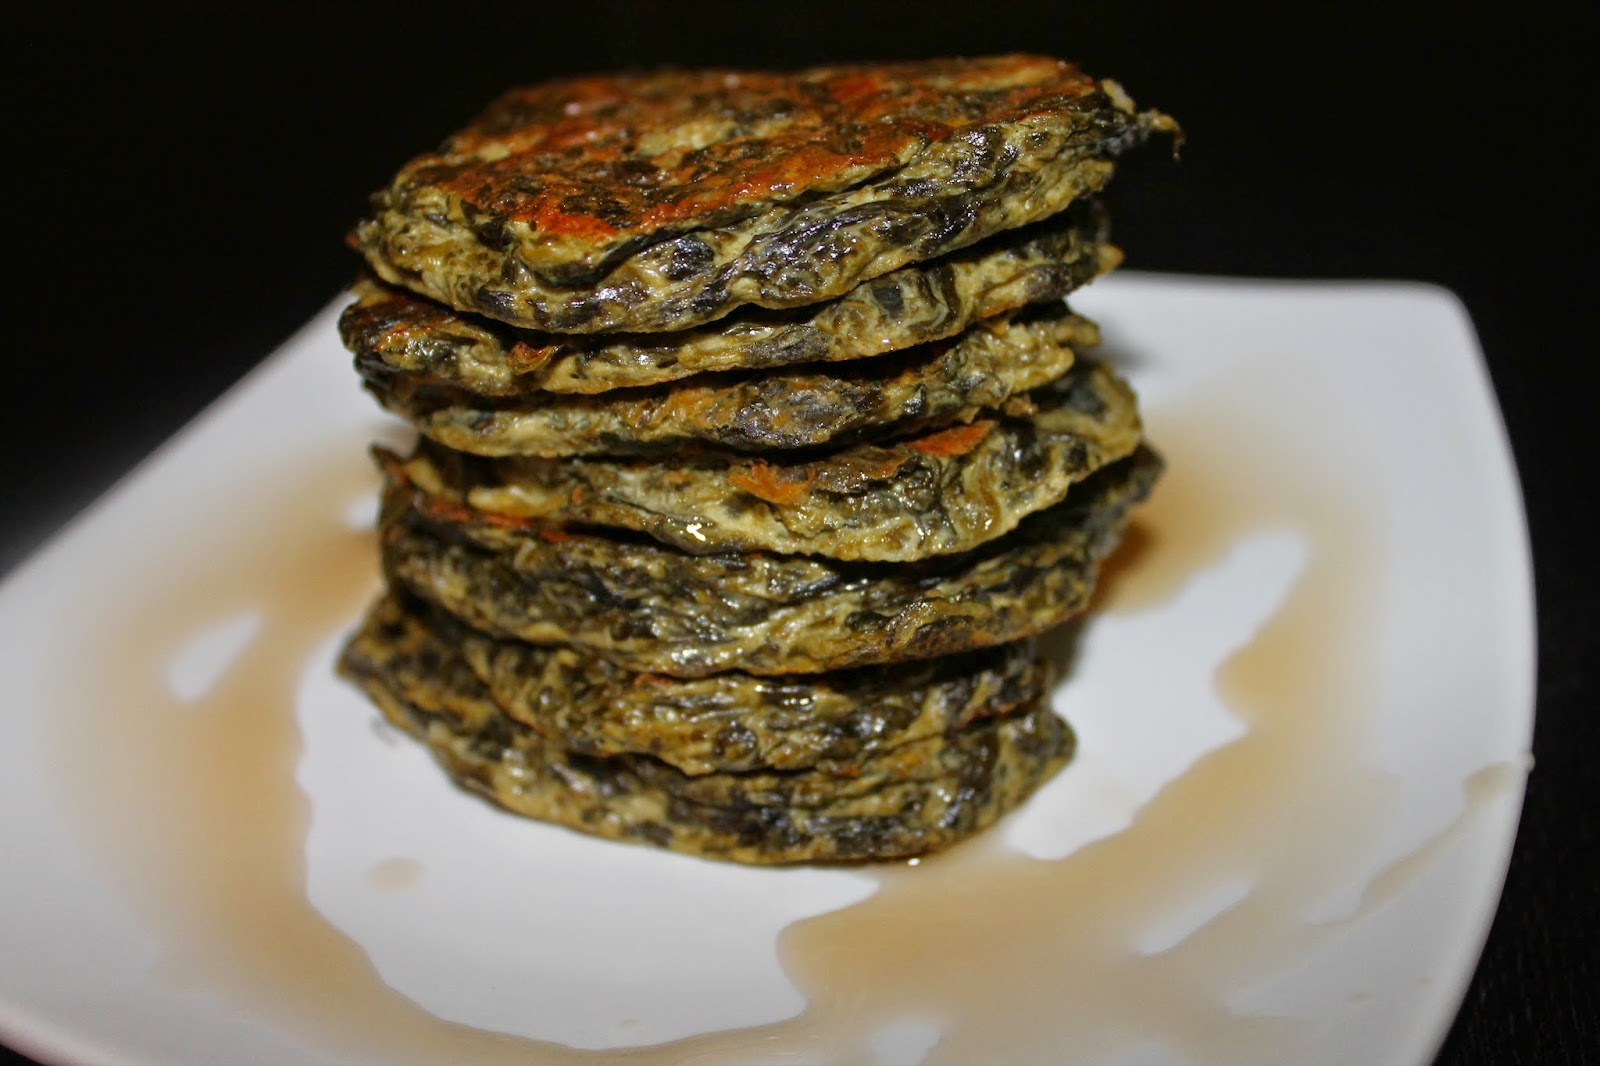 Not so ordi nanny me spinach pancakes i know i knoween pancakesnda crazy right too bad i didnt think of them for st patricks day these are so tasty you can make them savory or ccuart Image collections